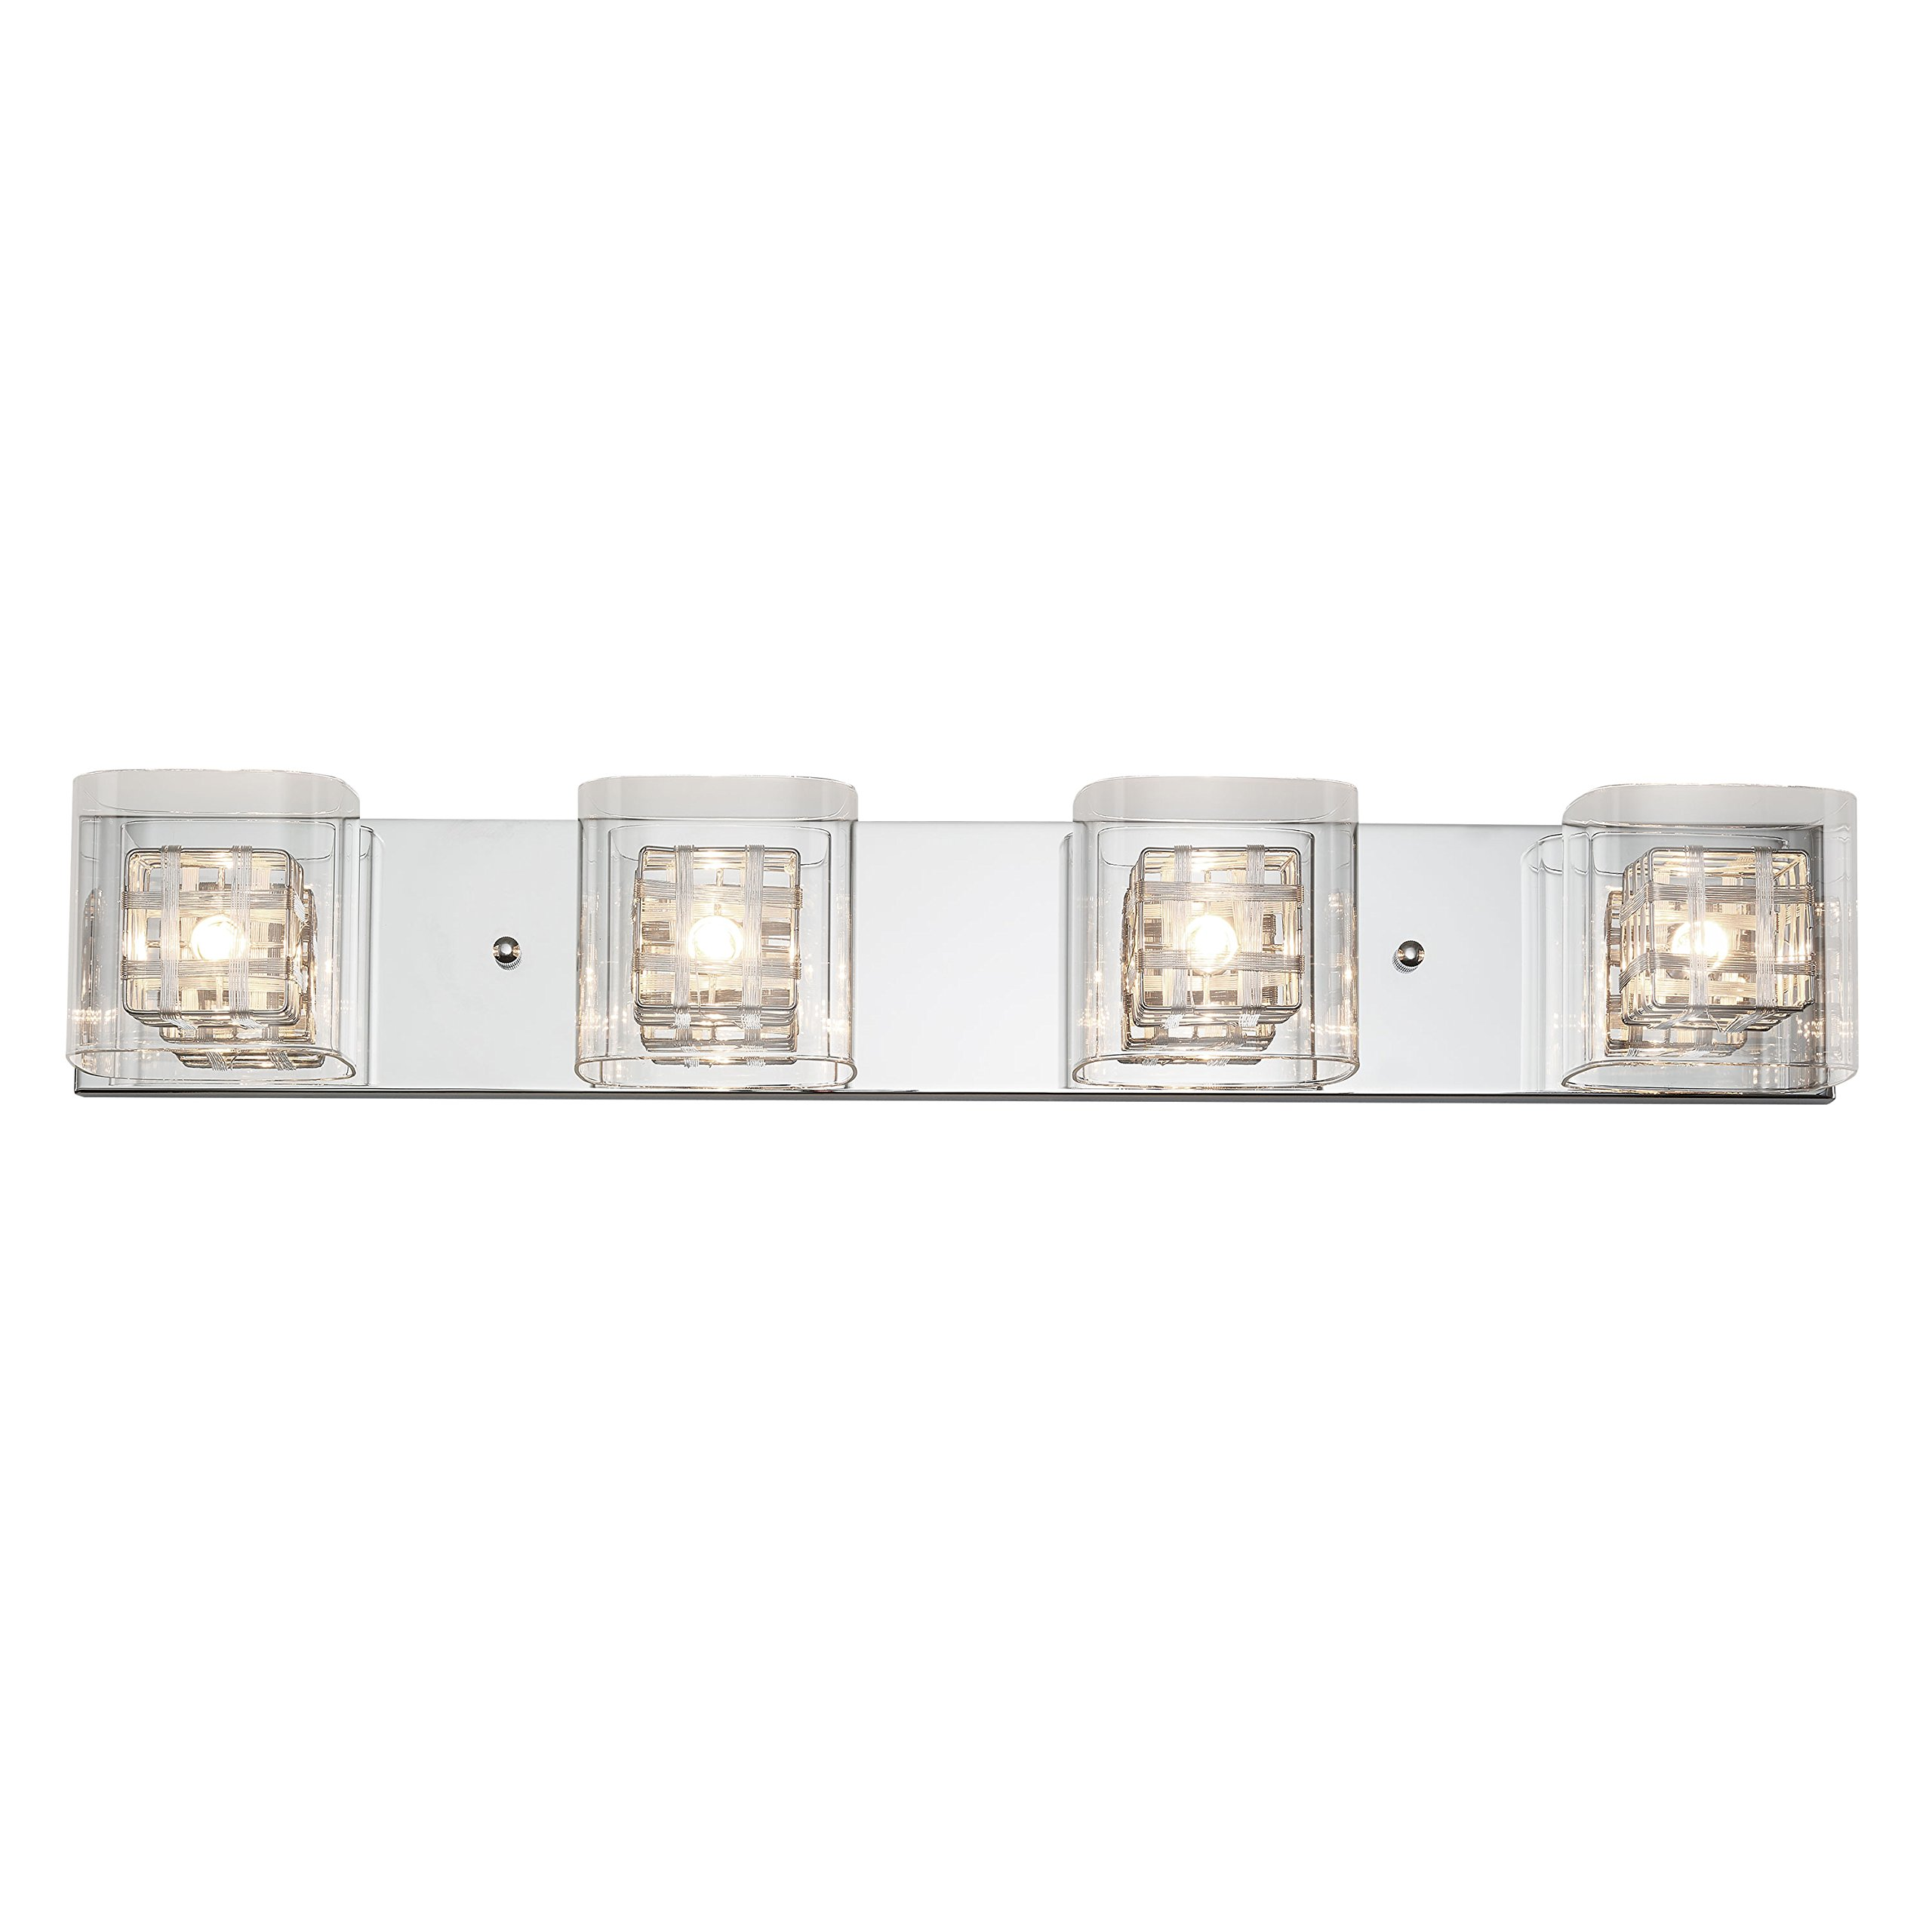 Artika VAN4M-HD1 Metropolitan 4-Light Bulbs, 30-inches Wall Fixture with Dimmable Light and a Chrome Finish by Artika (Image #1)